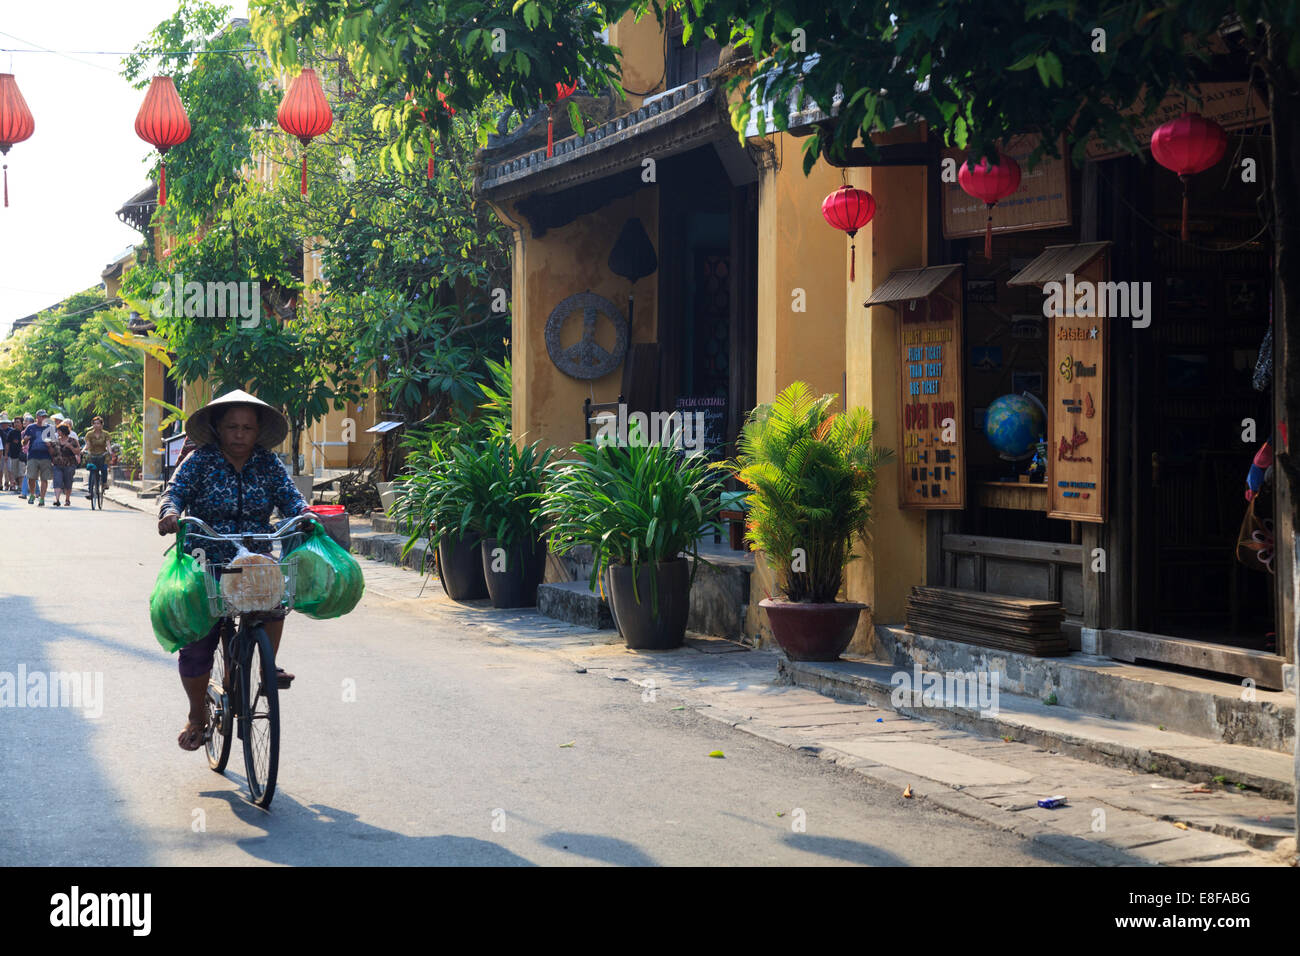 Vietnam, Quang Nam, Hoi an Altstadt (UNESCO-Website) Stockbild